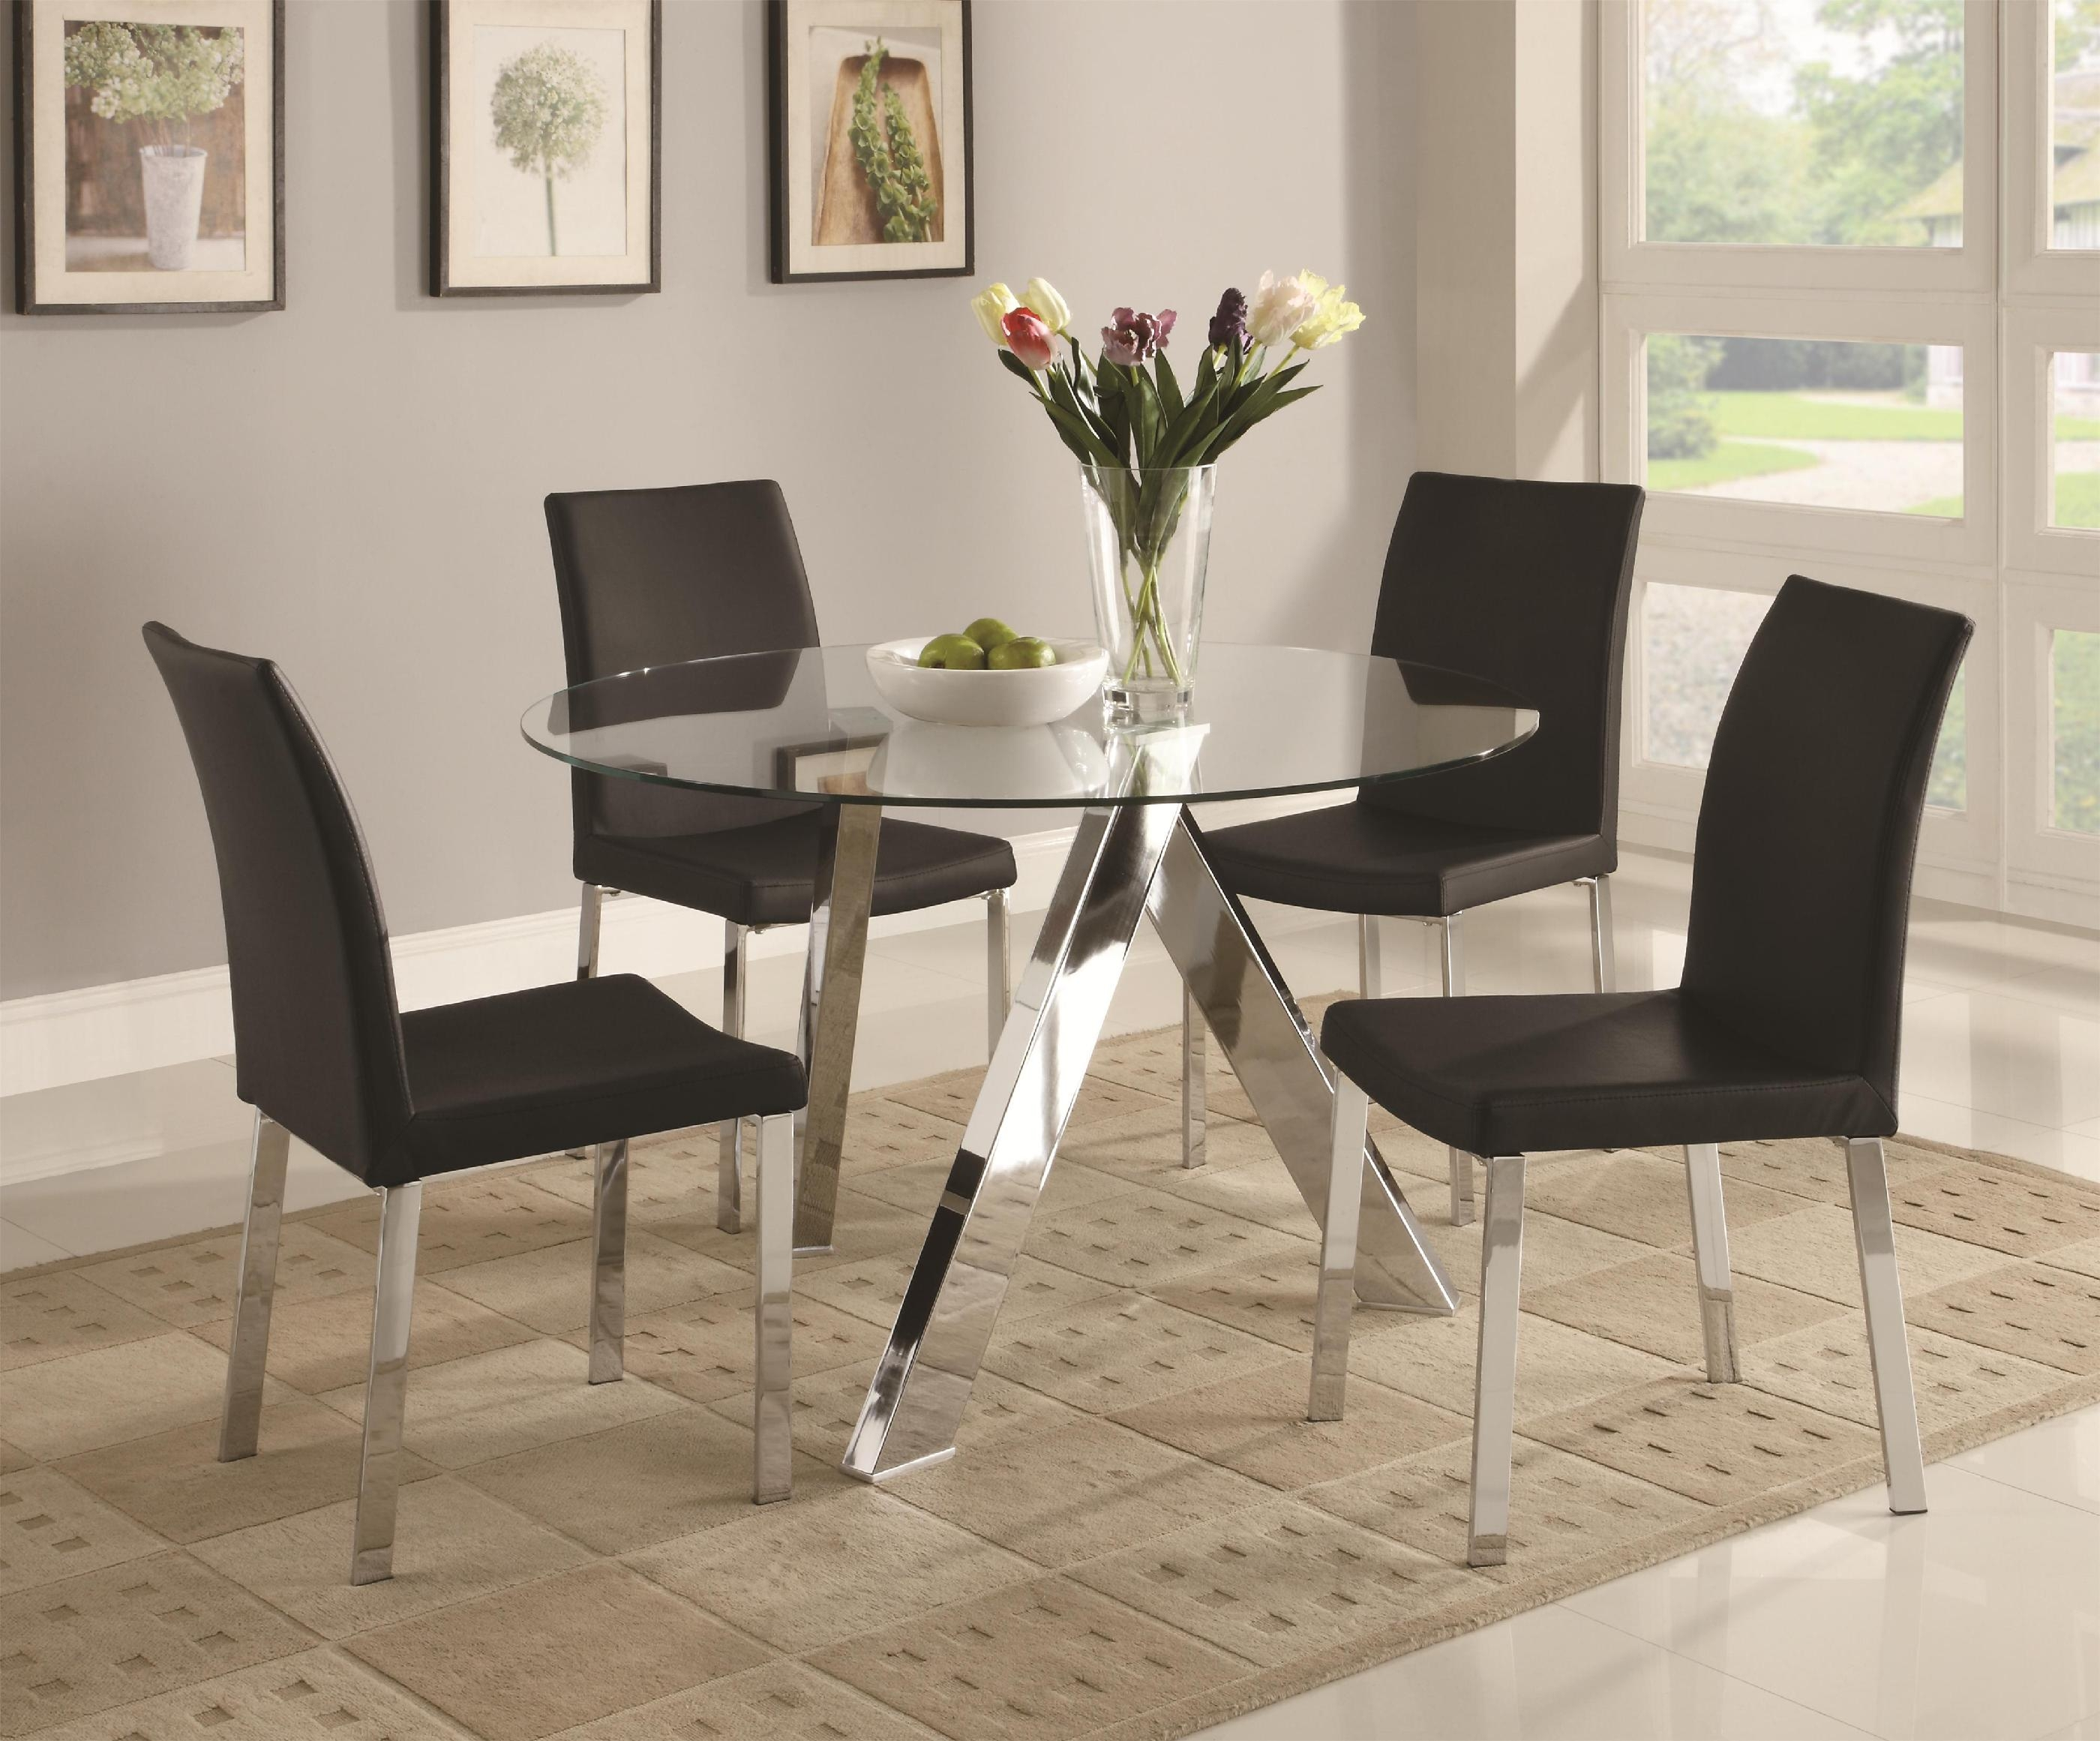 View In Gallery A Round Glass Dining Table